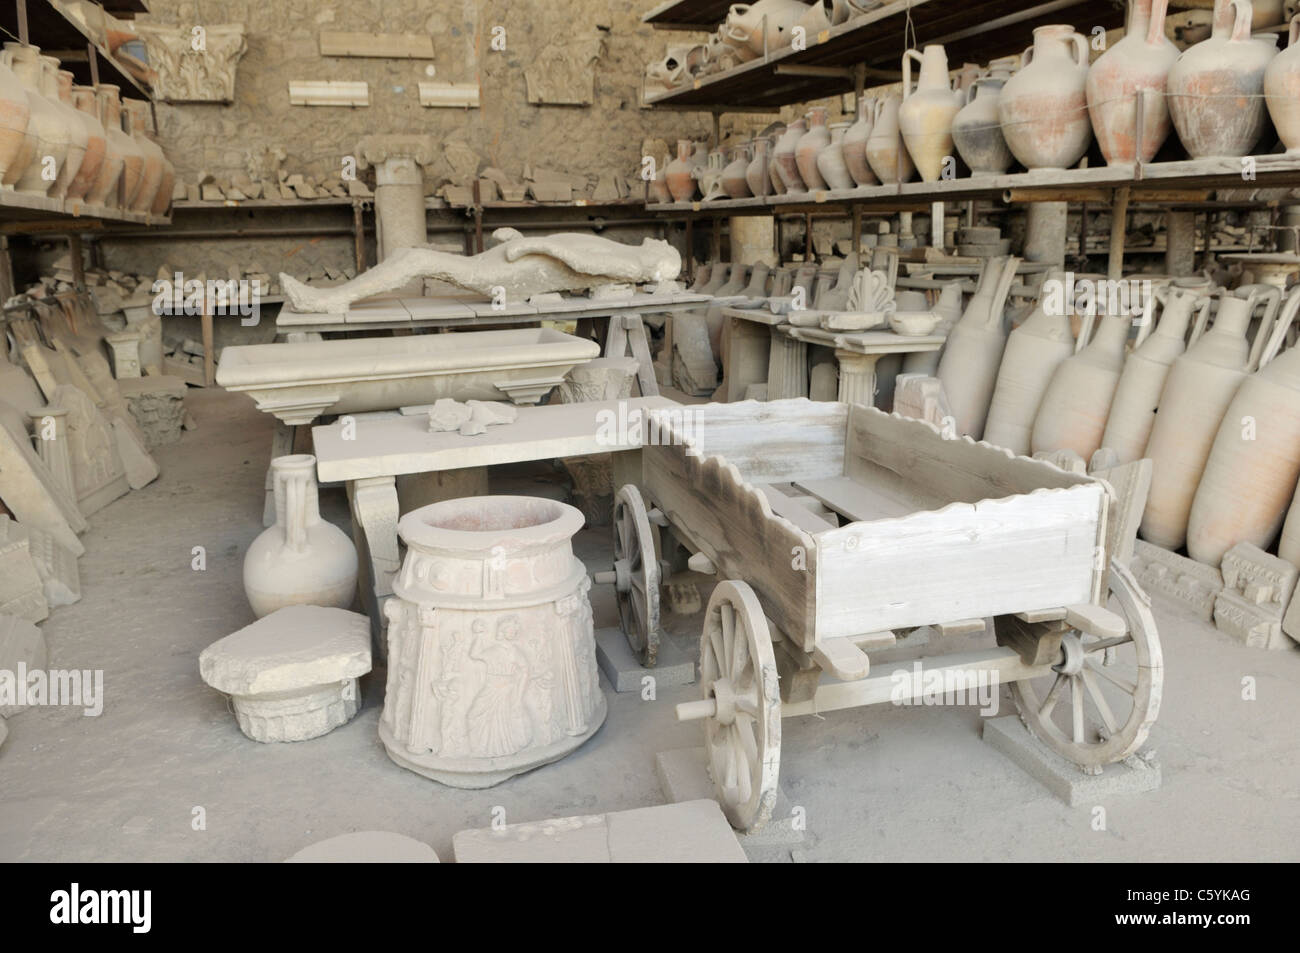 Pompeii forum granary, originally a market, now used as storage for artifacts from the site - Stock Image